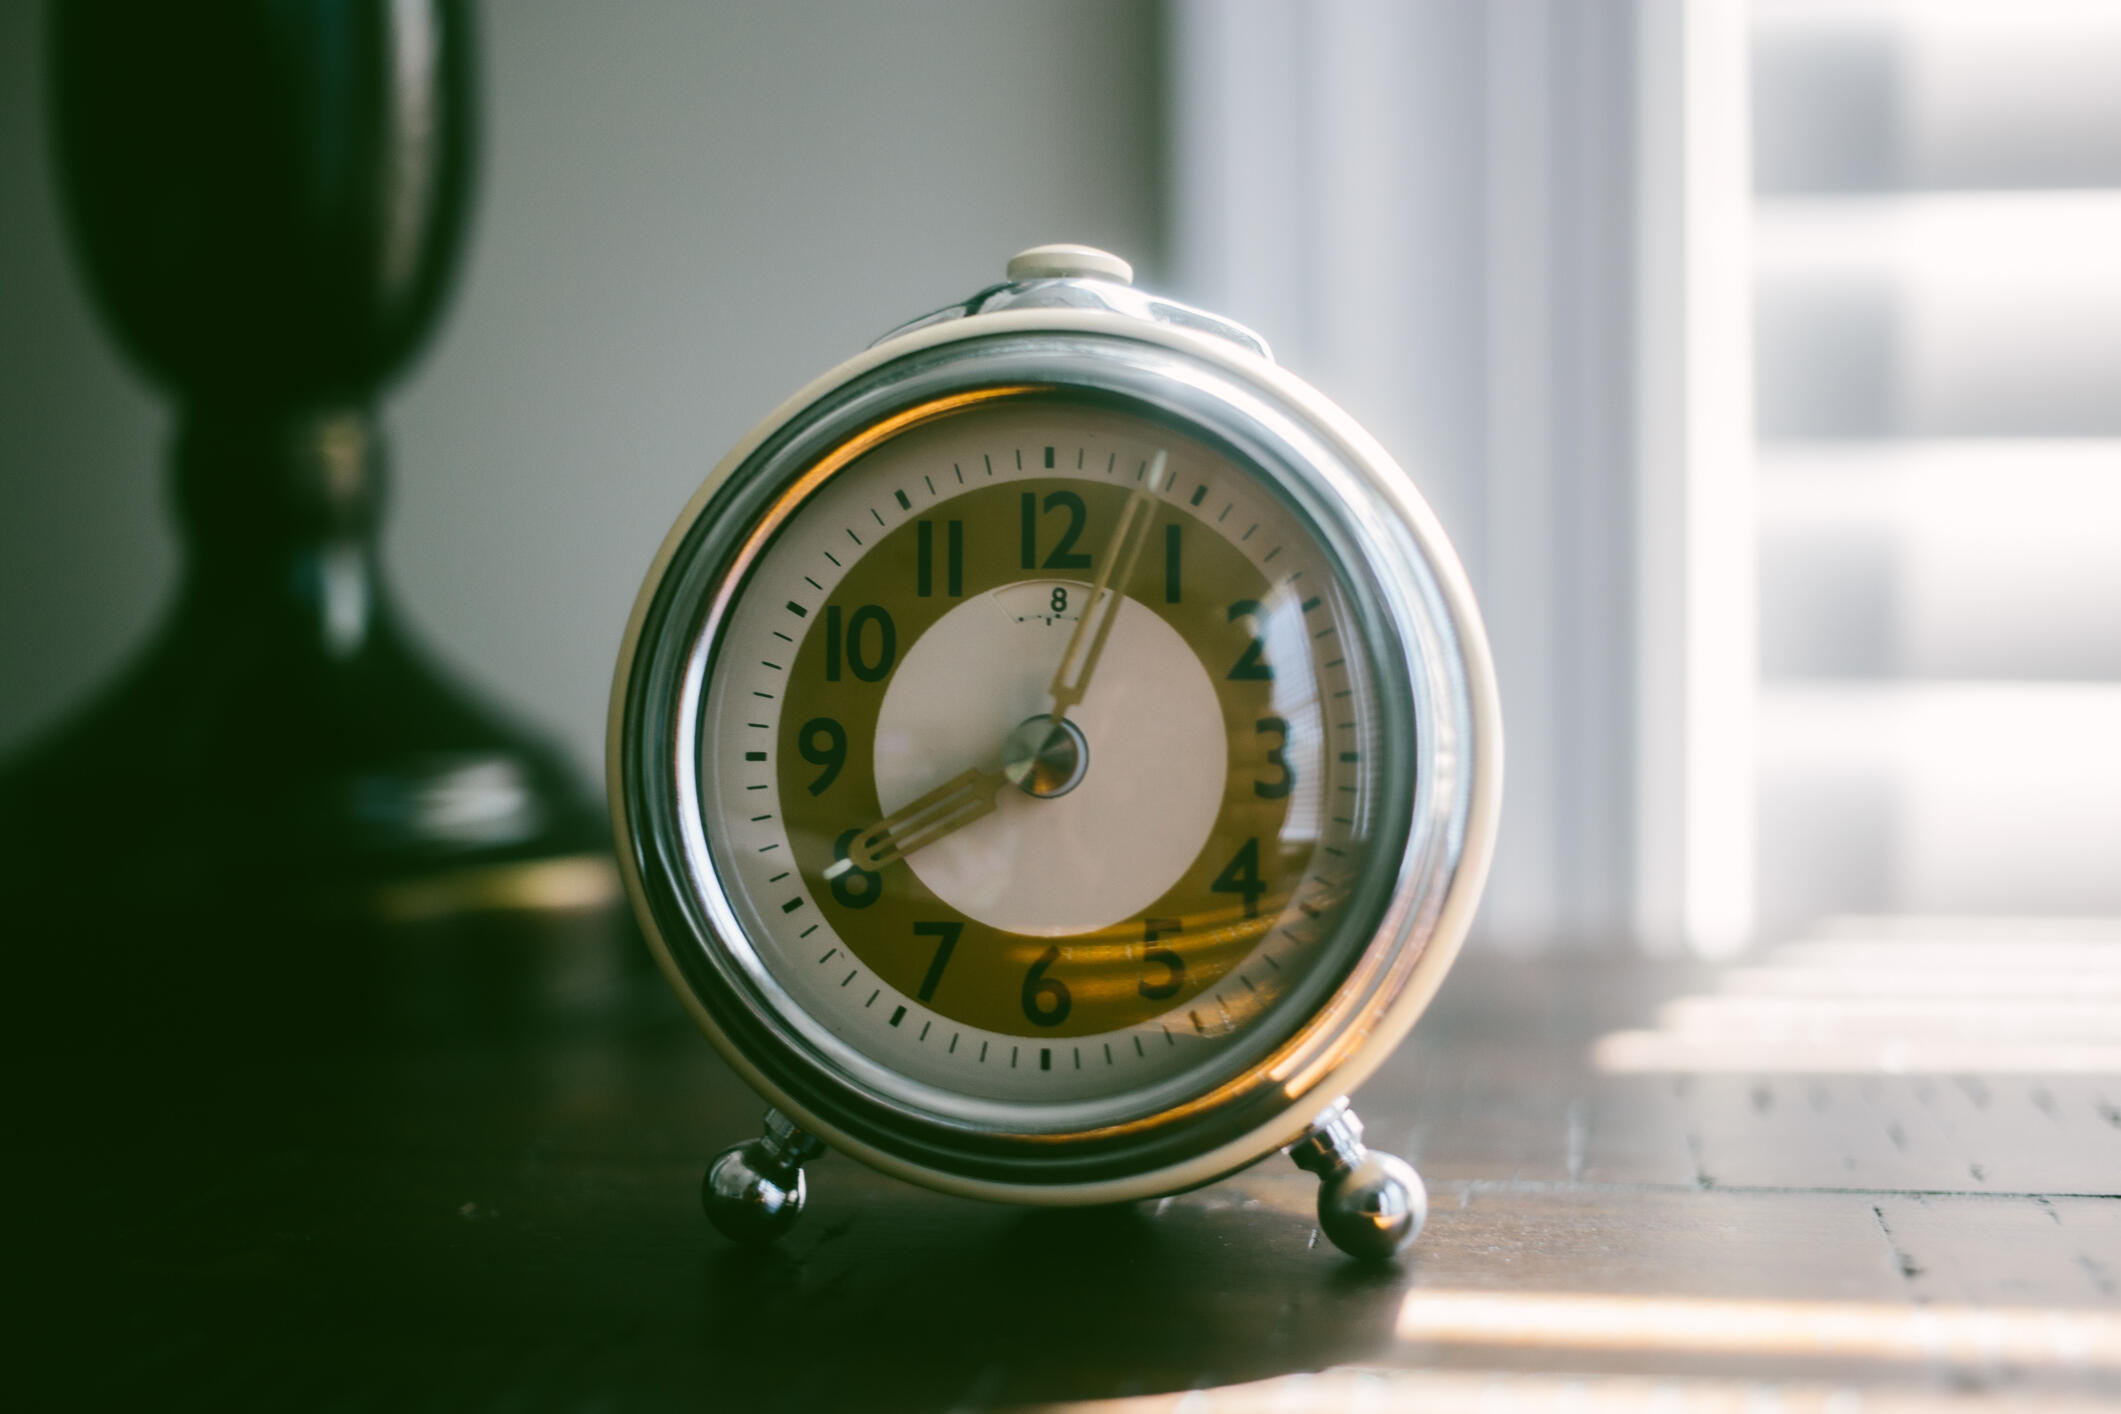 a vintage alarm clock on a nightstand